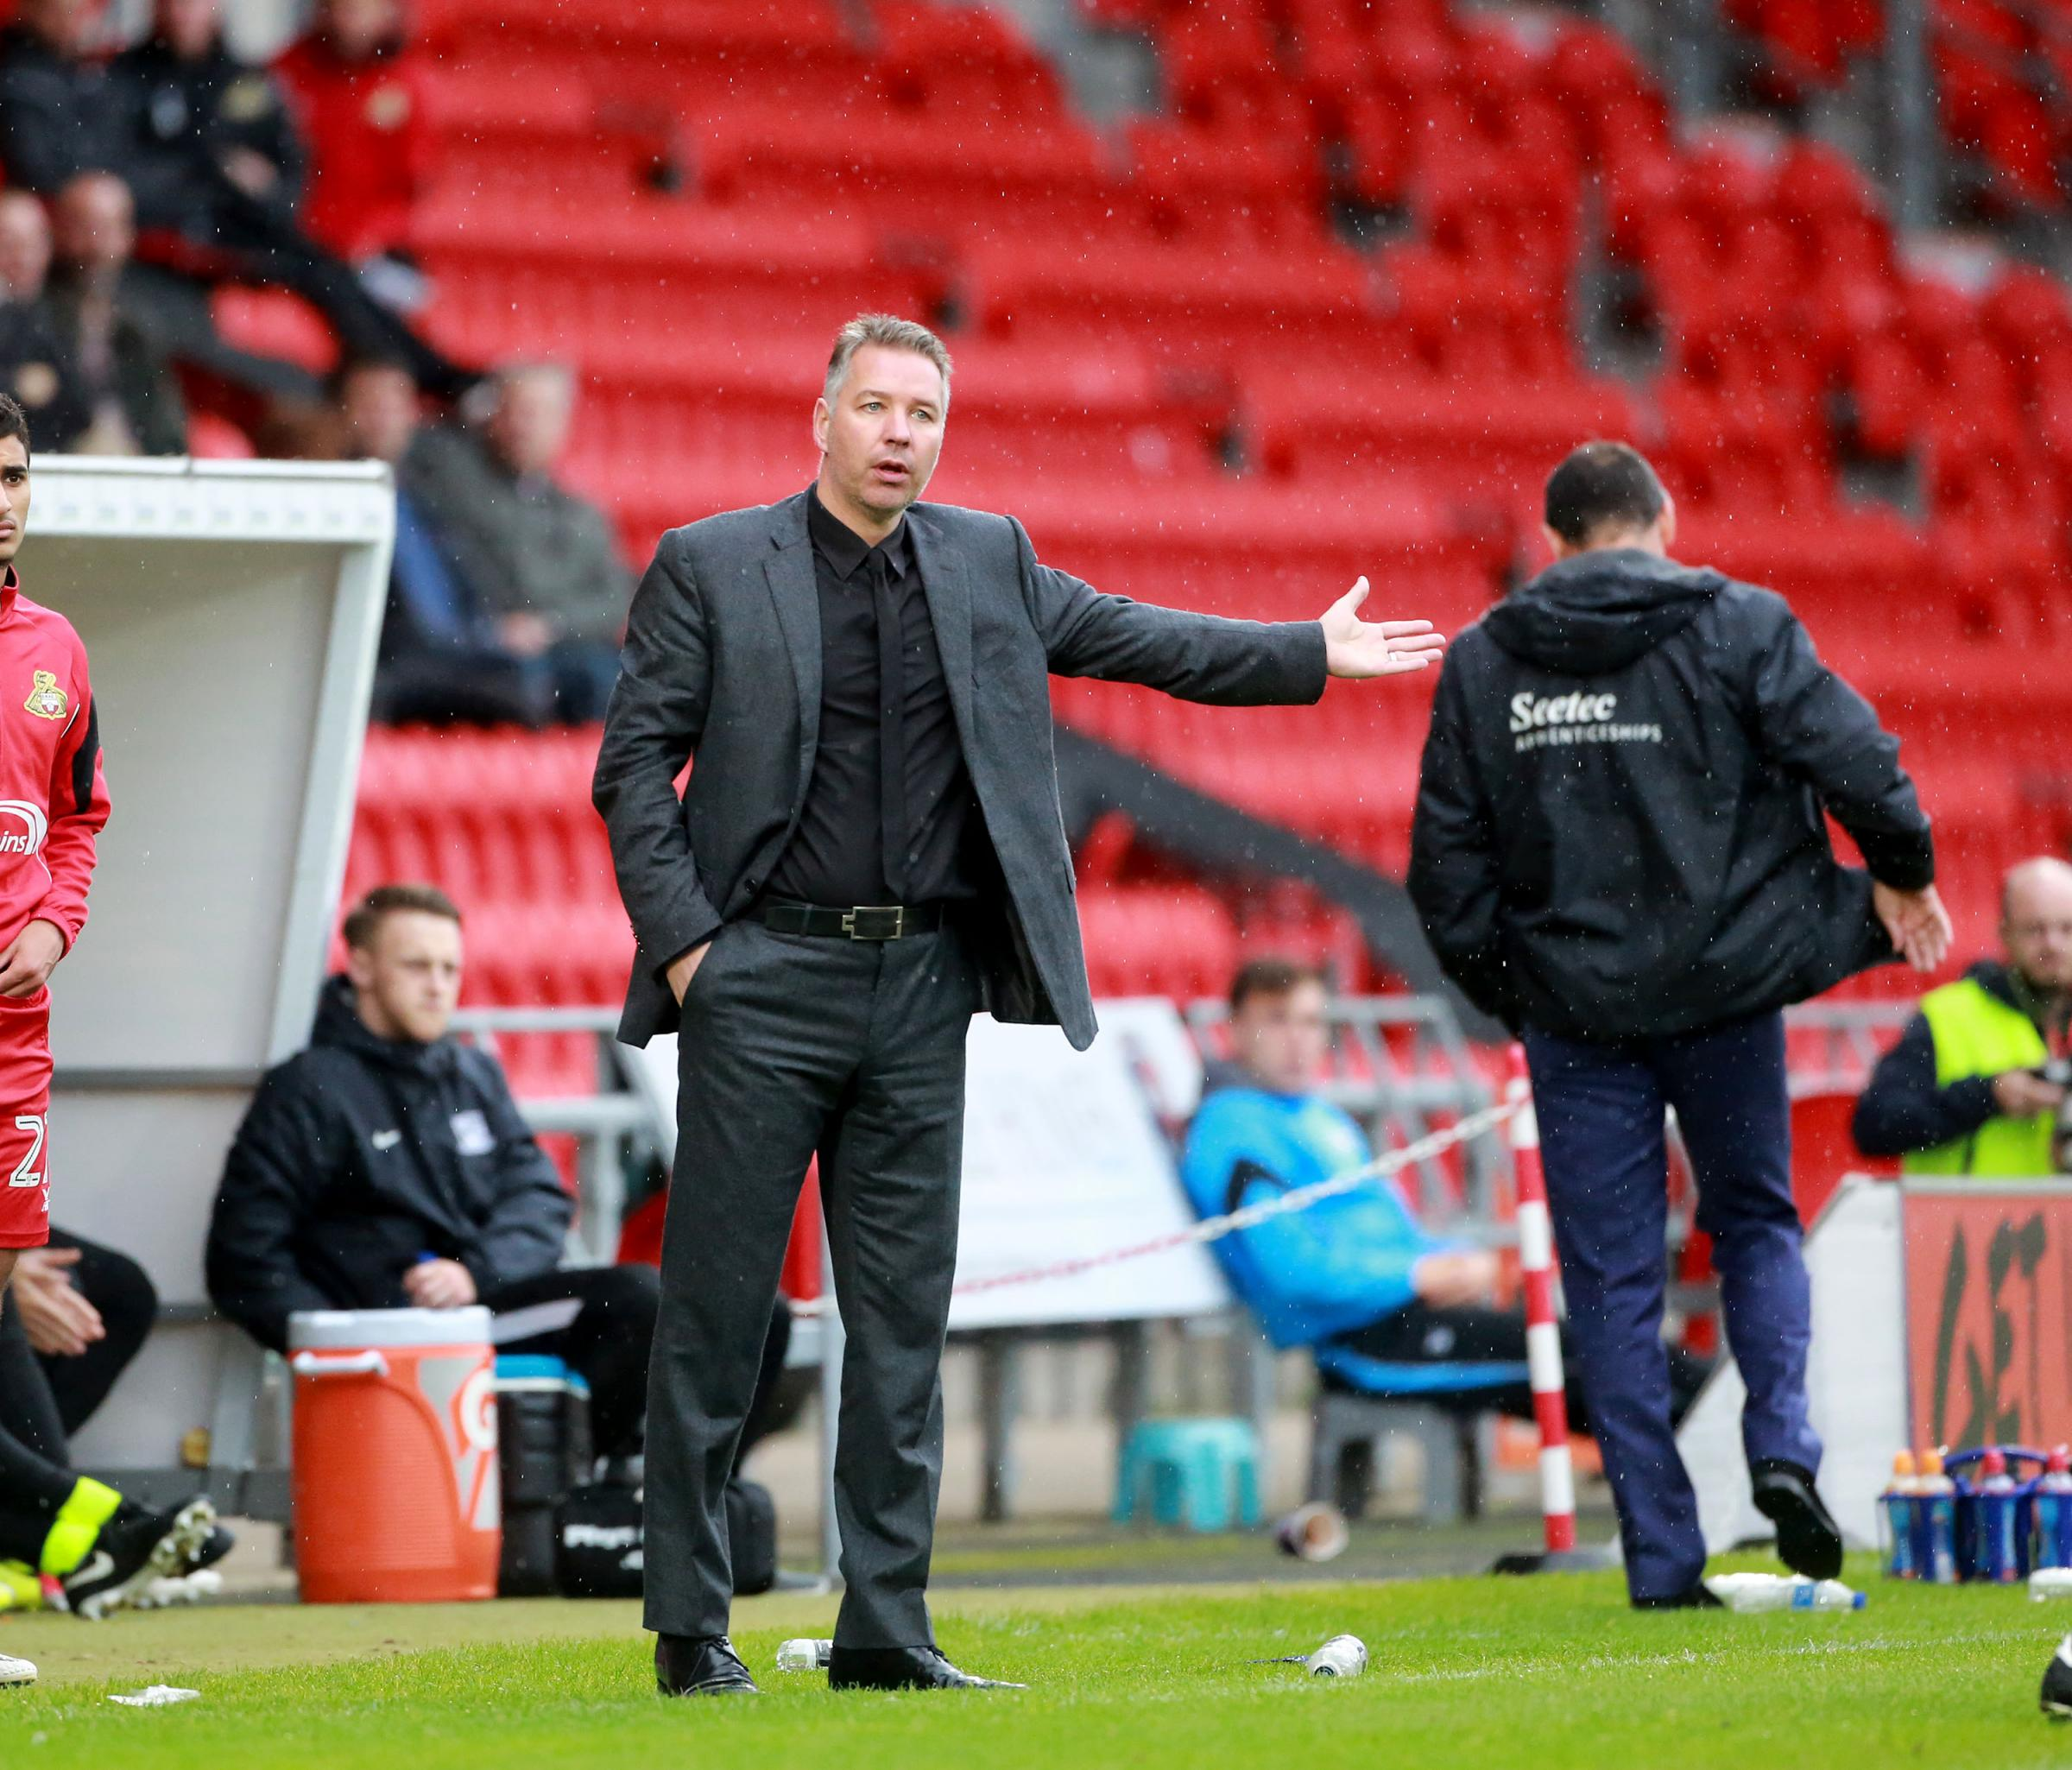 Heading to Roots Hall - Doncaster Rovers manager Darren Ferguson